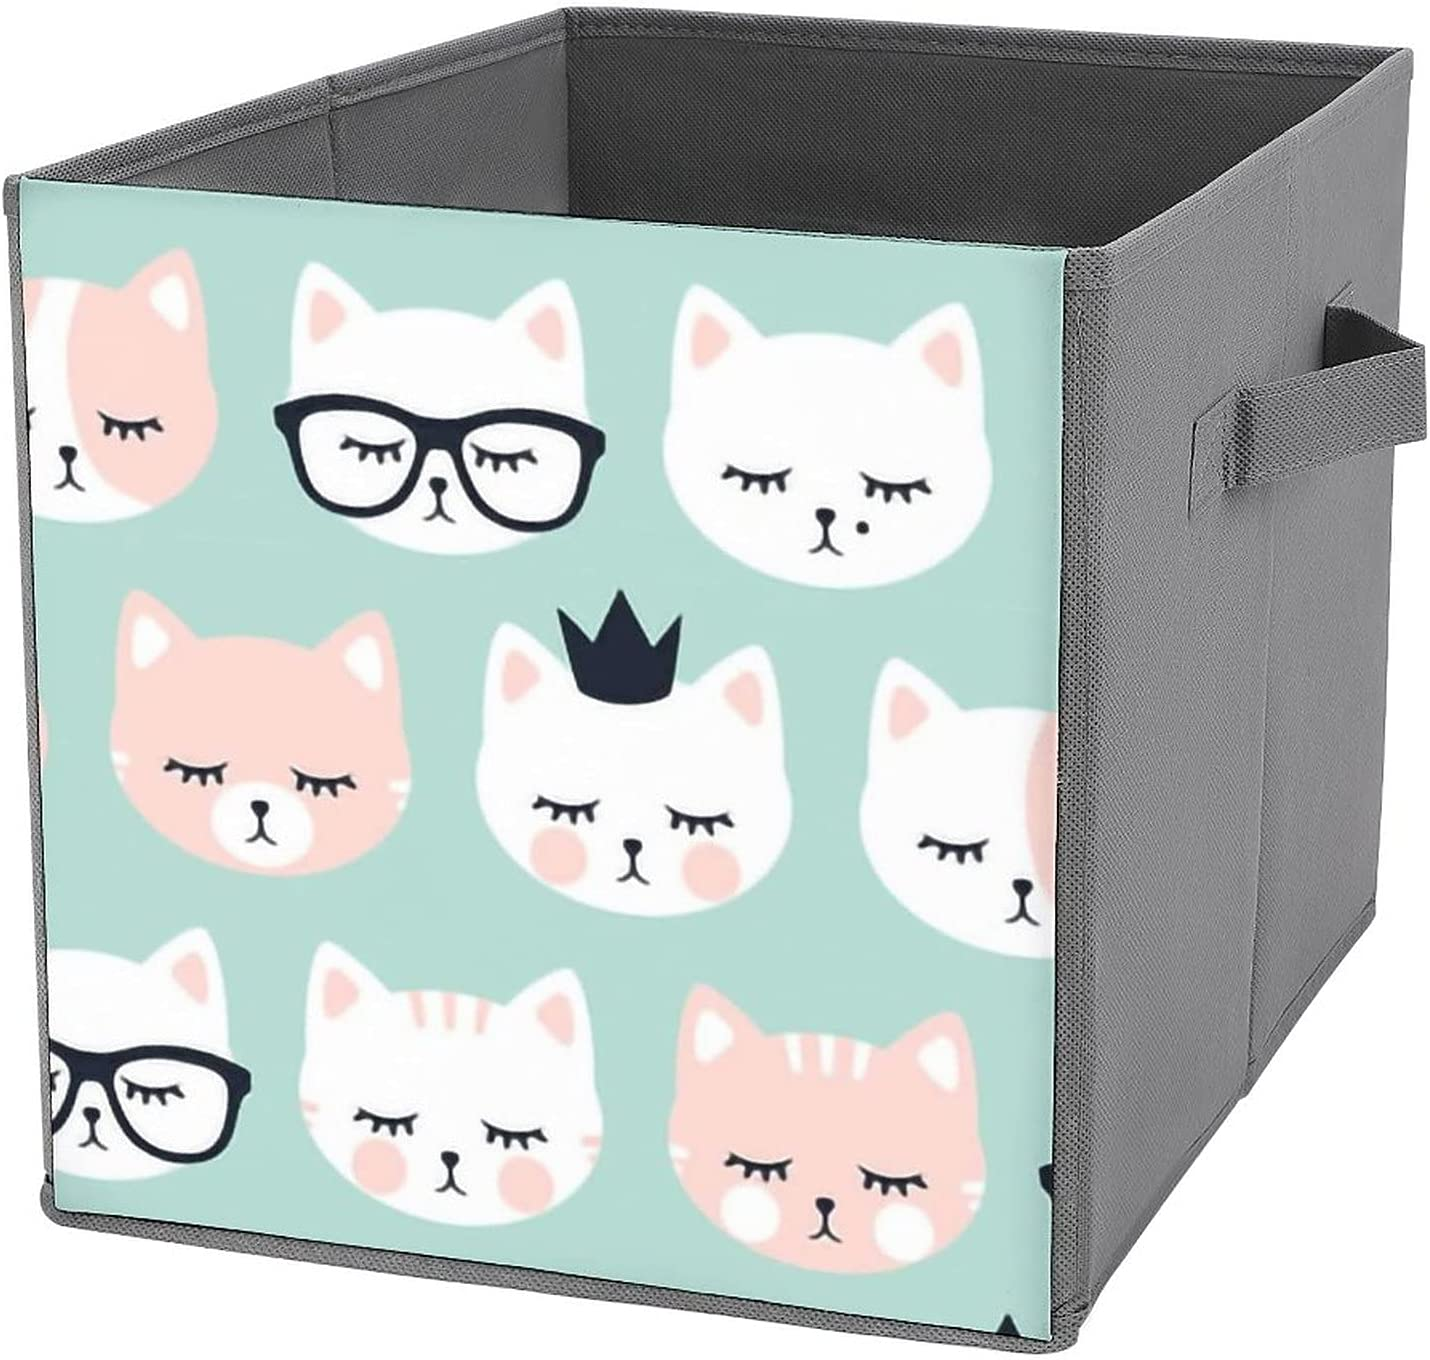 MMJUI Jumbo Scale cat Faces Al sold out. on Dark Folding Bins Sales of SALE items from new works Storage Co Mint